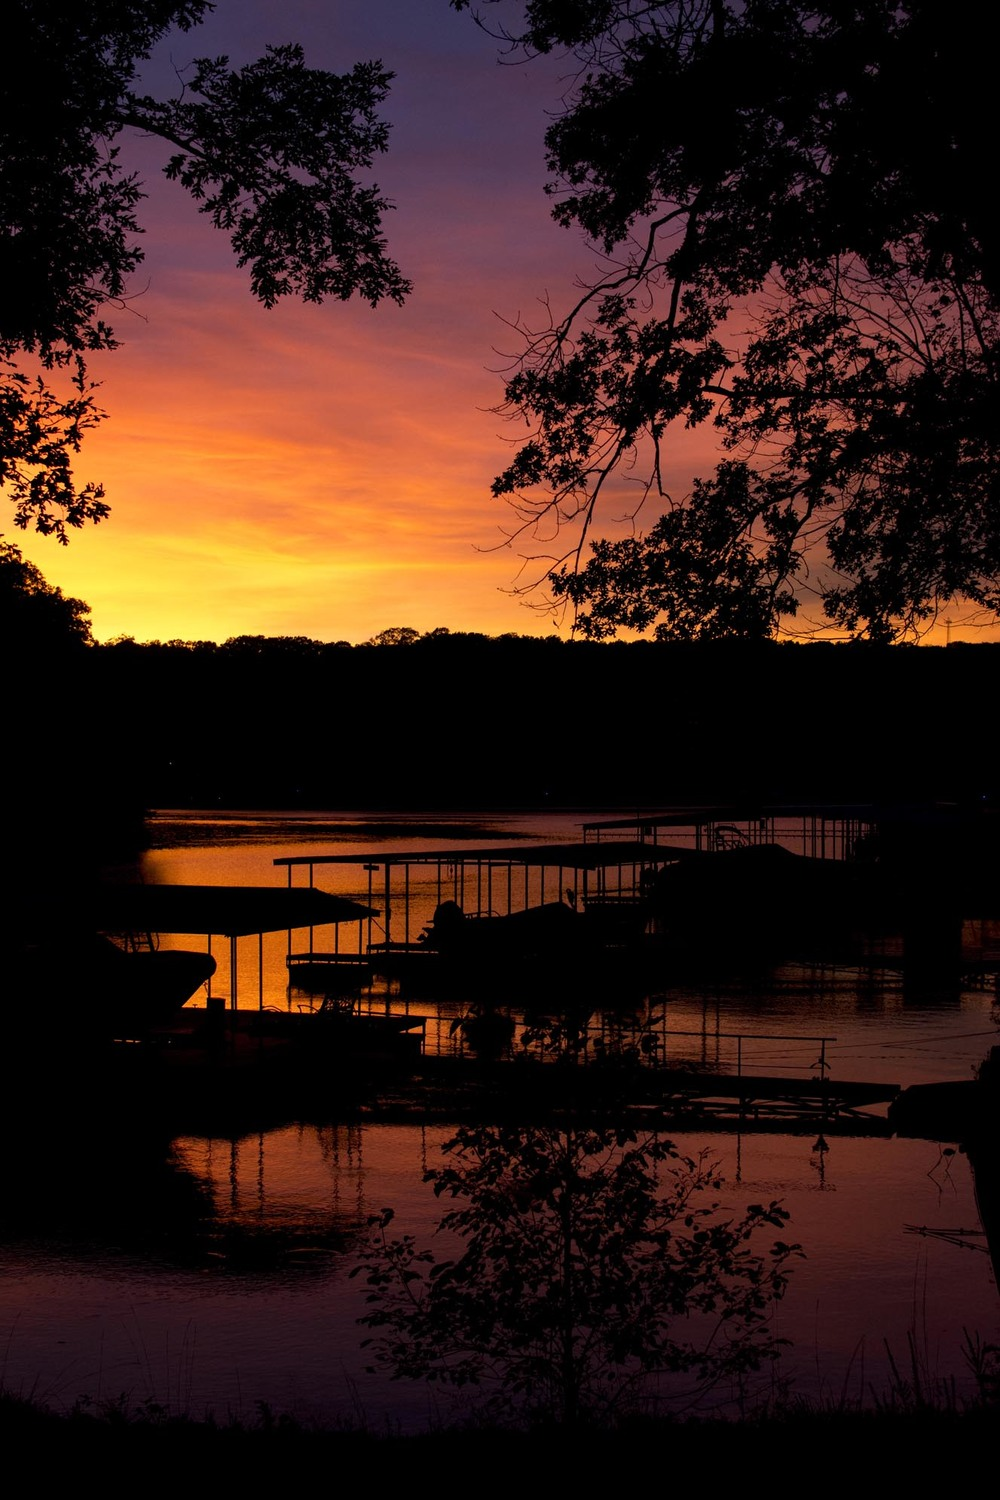 sunset3_lakehouse_10-10-15.jpg